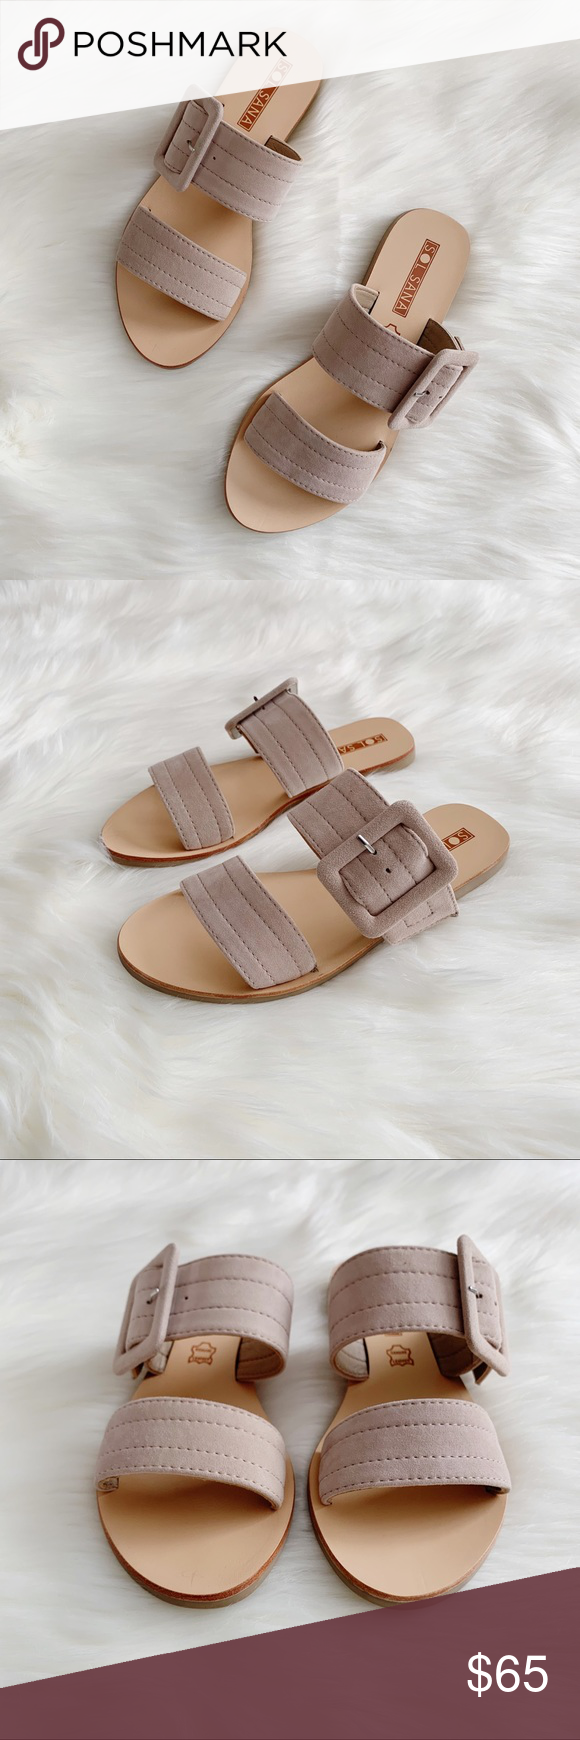 7907f4386f8fdf Sol Sana Finn Slide Suede Sandals NIB Classic and chic slide sandals from Sol  Sana.